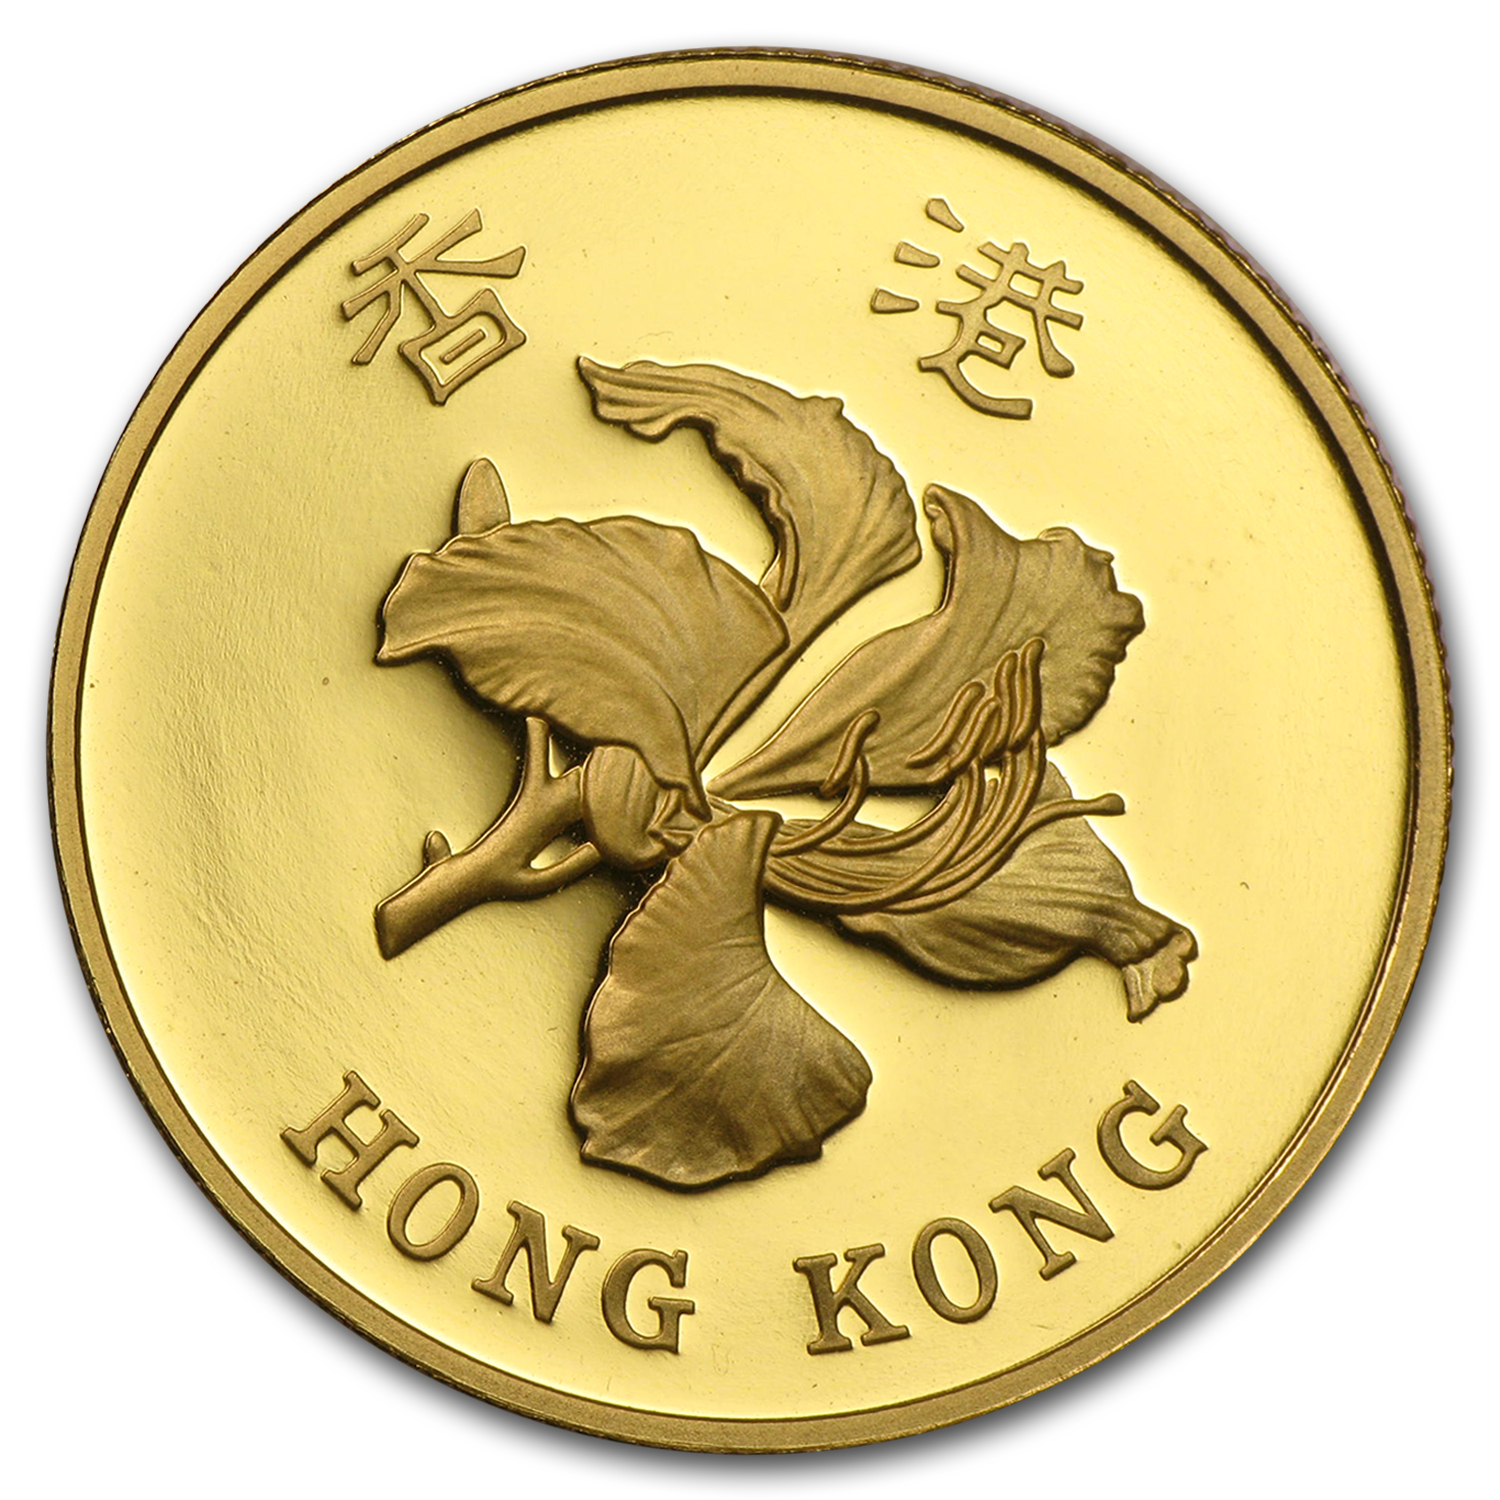 1997 Hong Kong Proof Gold $1000 Dollars Return to China